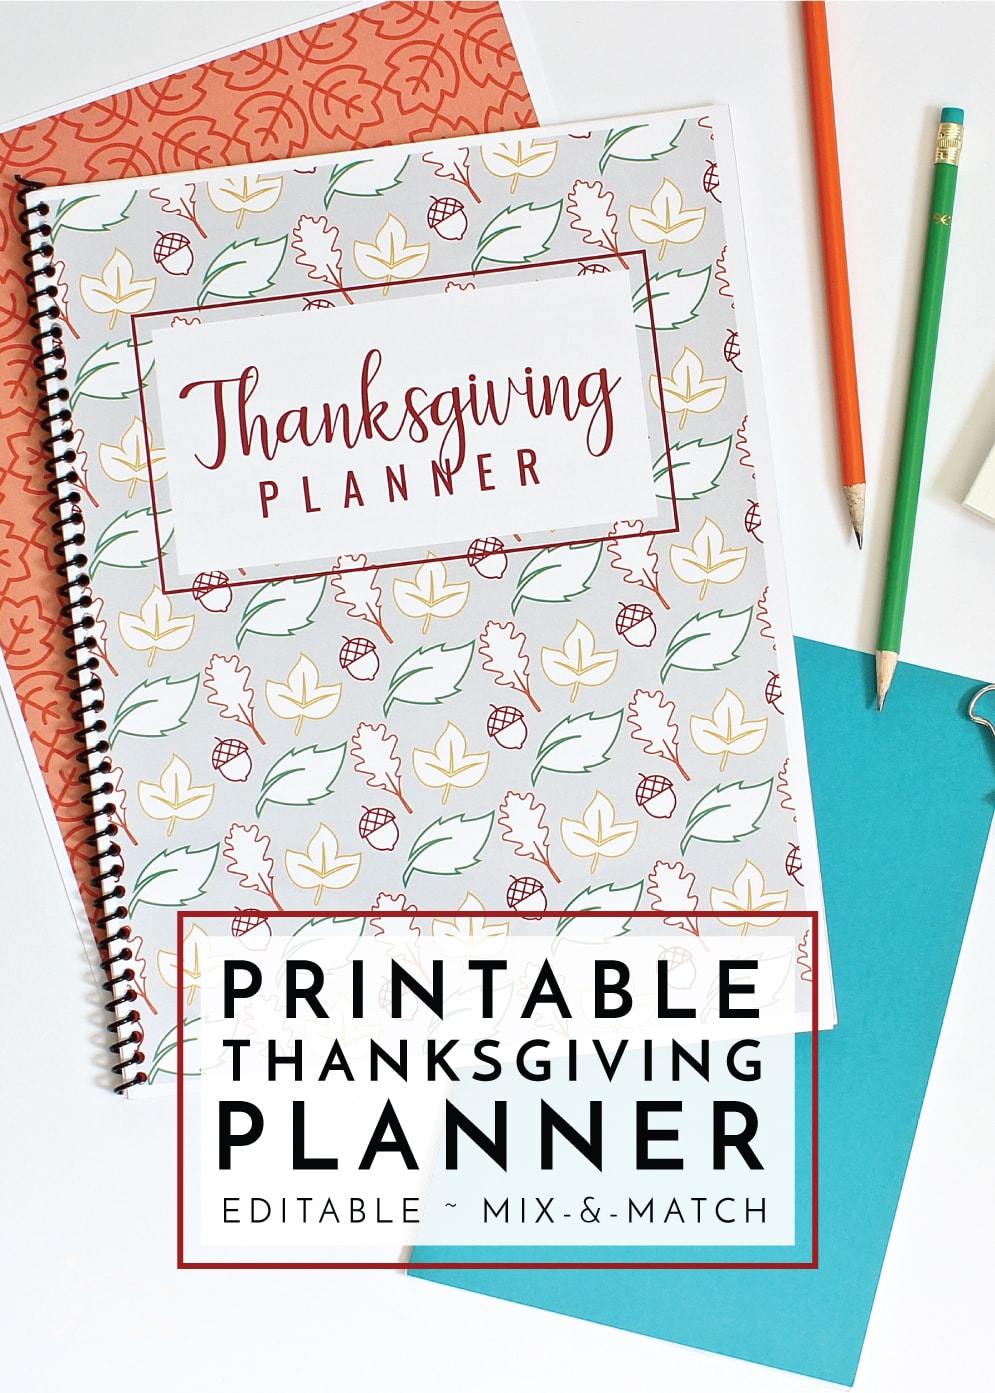 image about Thanksgiving Planner Printable named Fresh in direction of The Company Toolbox: Printable Thanksgiving